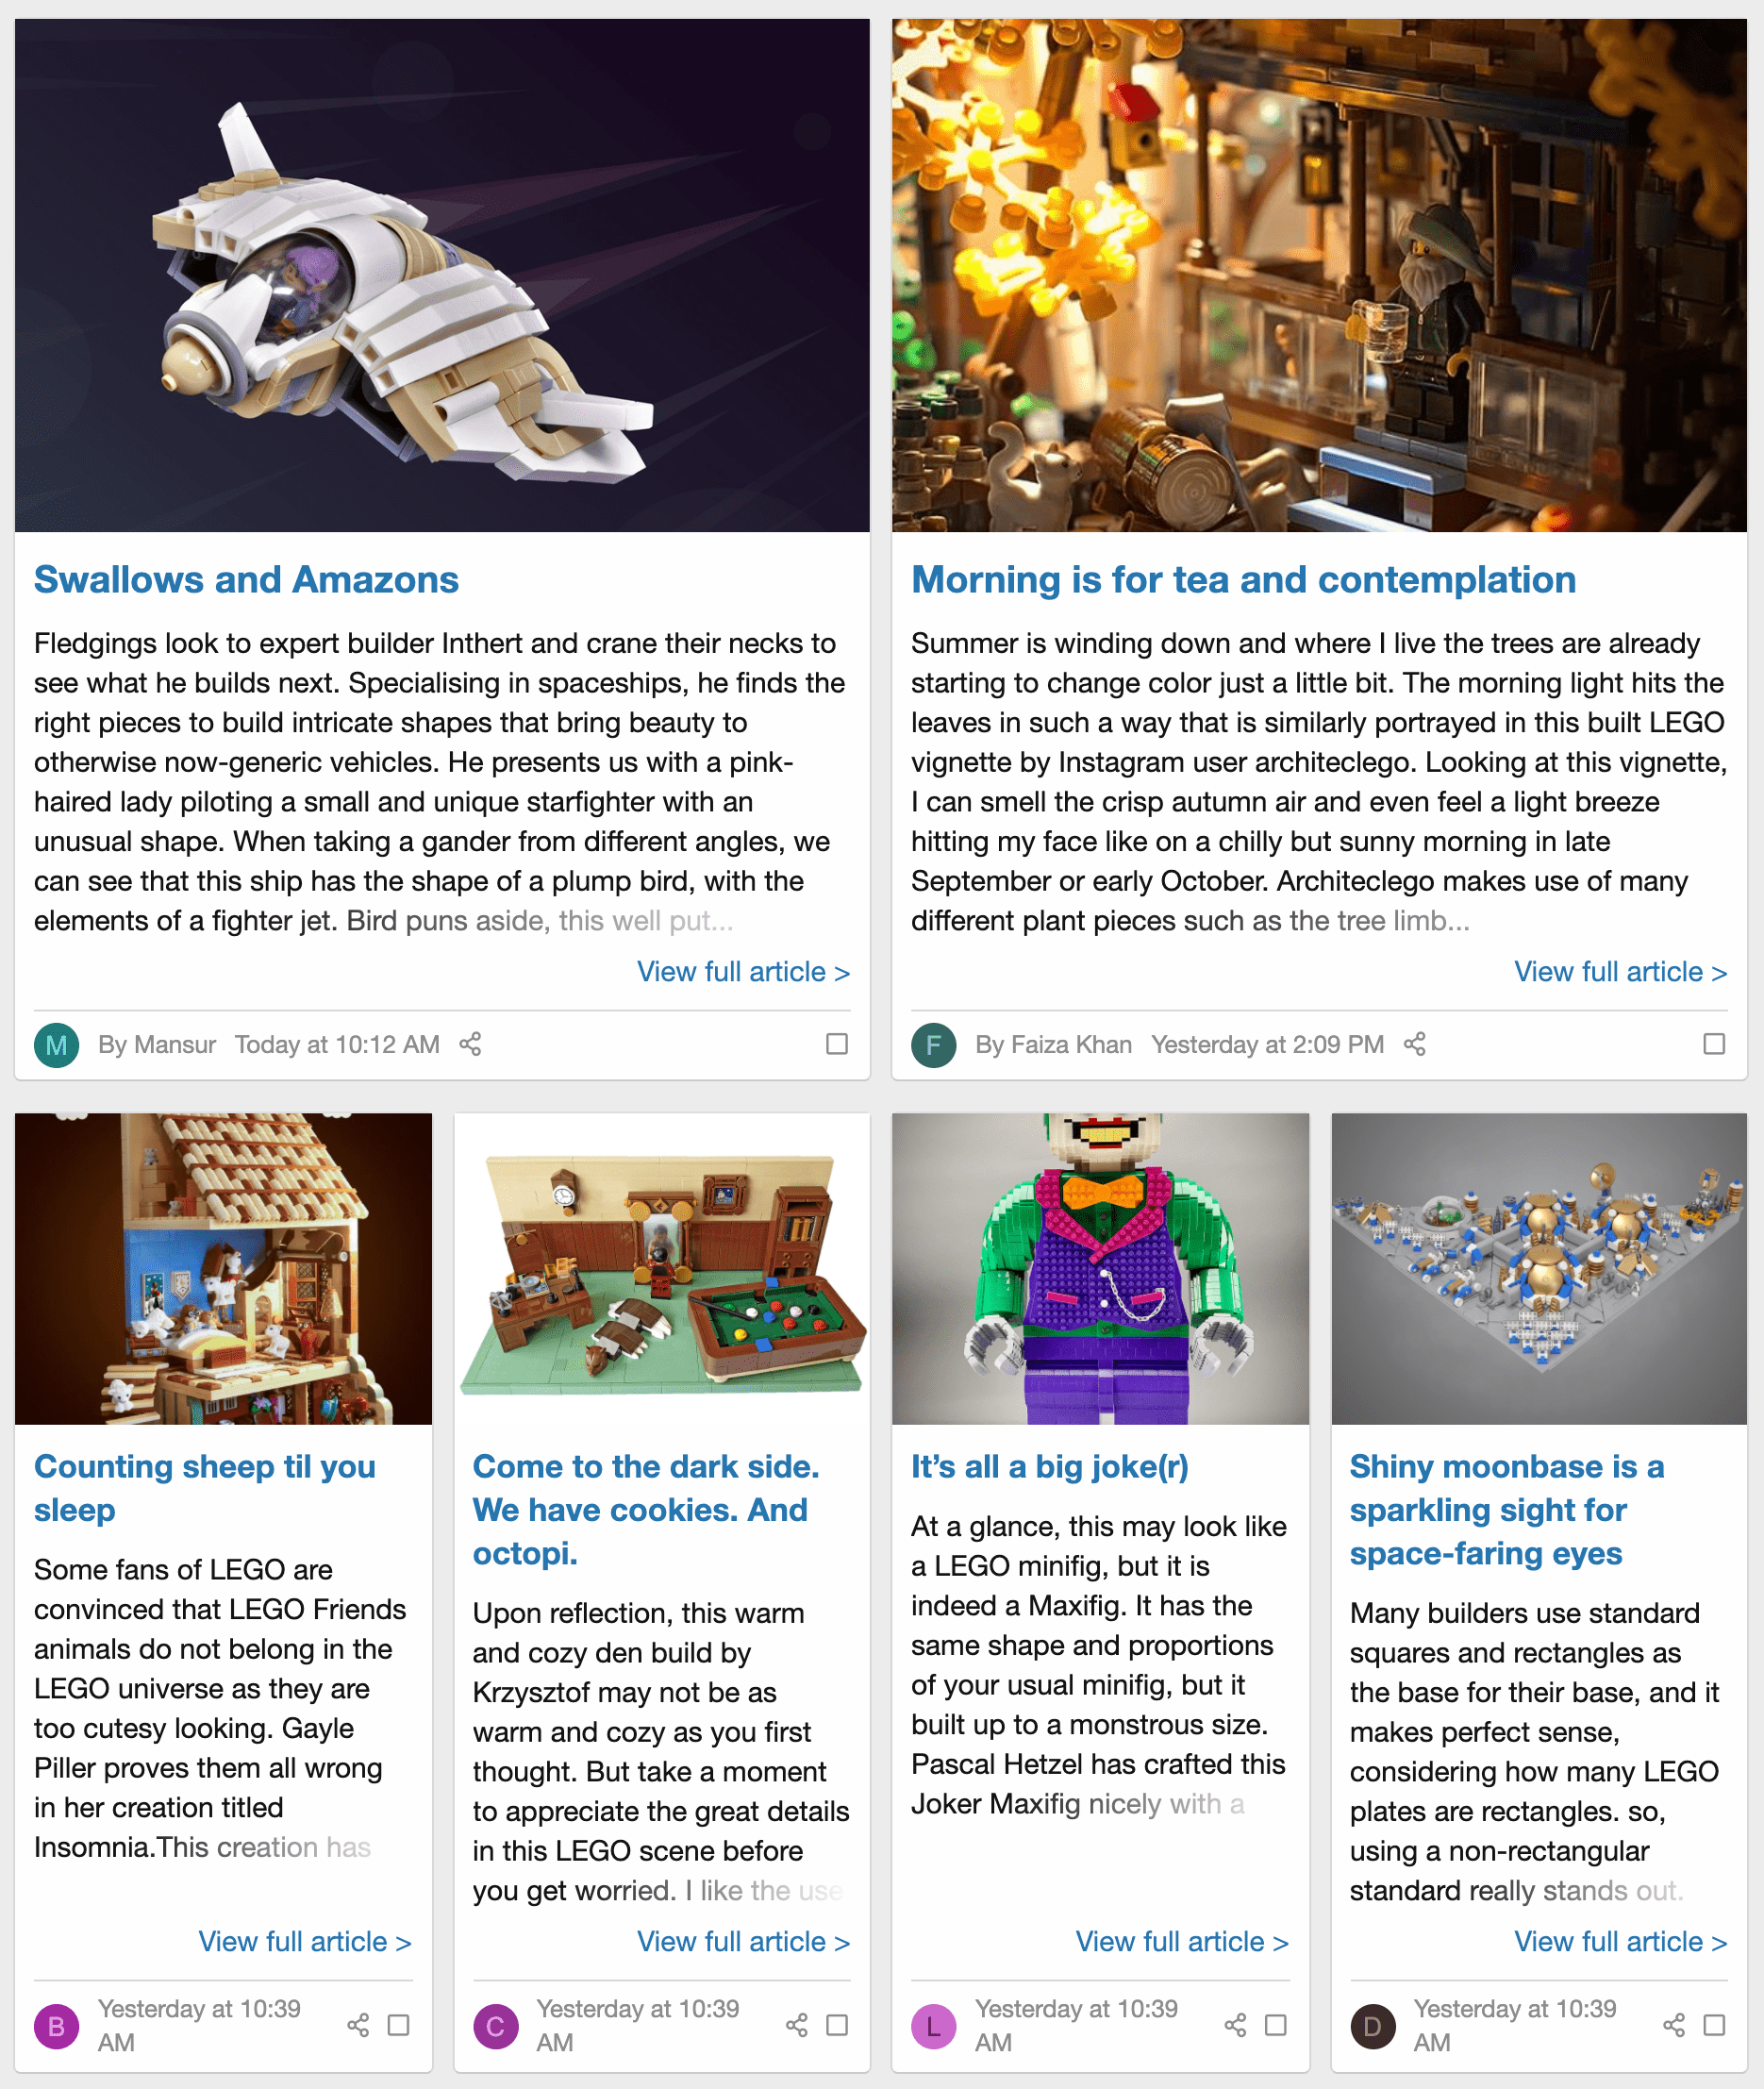 content-article-layout.png